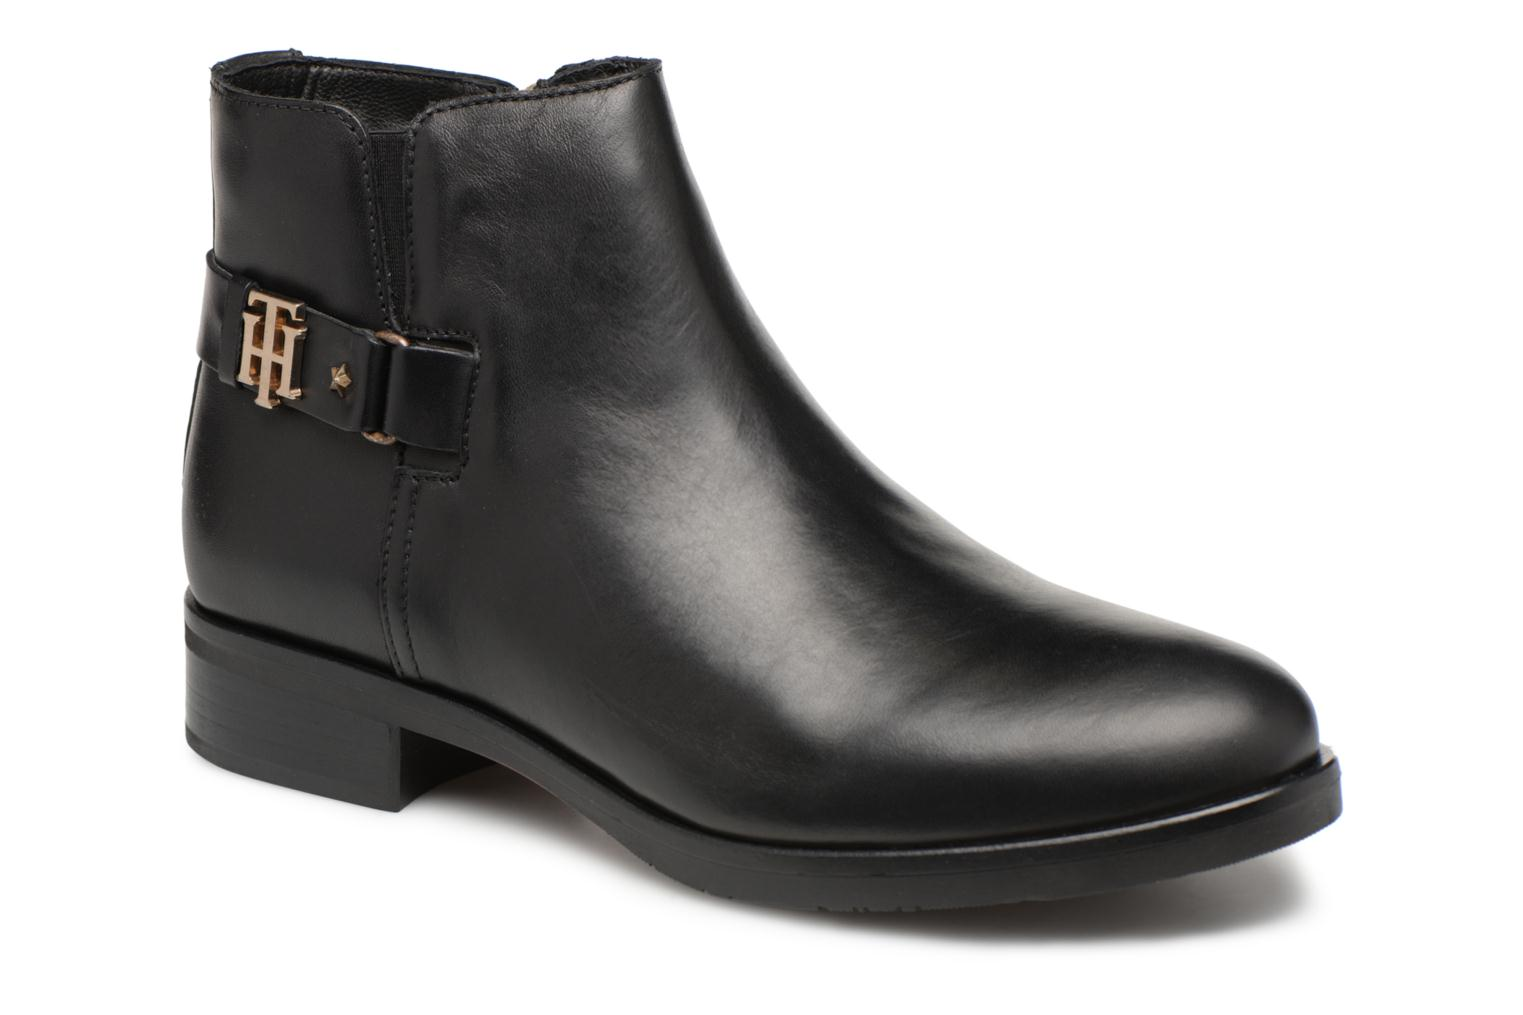 Bottines et boots Tommy Hilfiger TH BUCKLE LEATHER BOOTIE Noir vue détail/paire